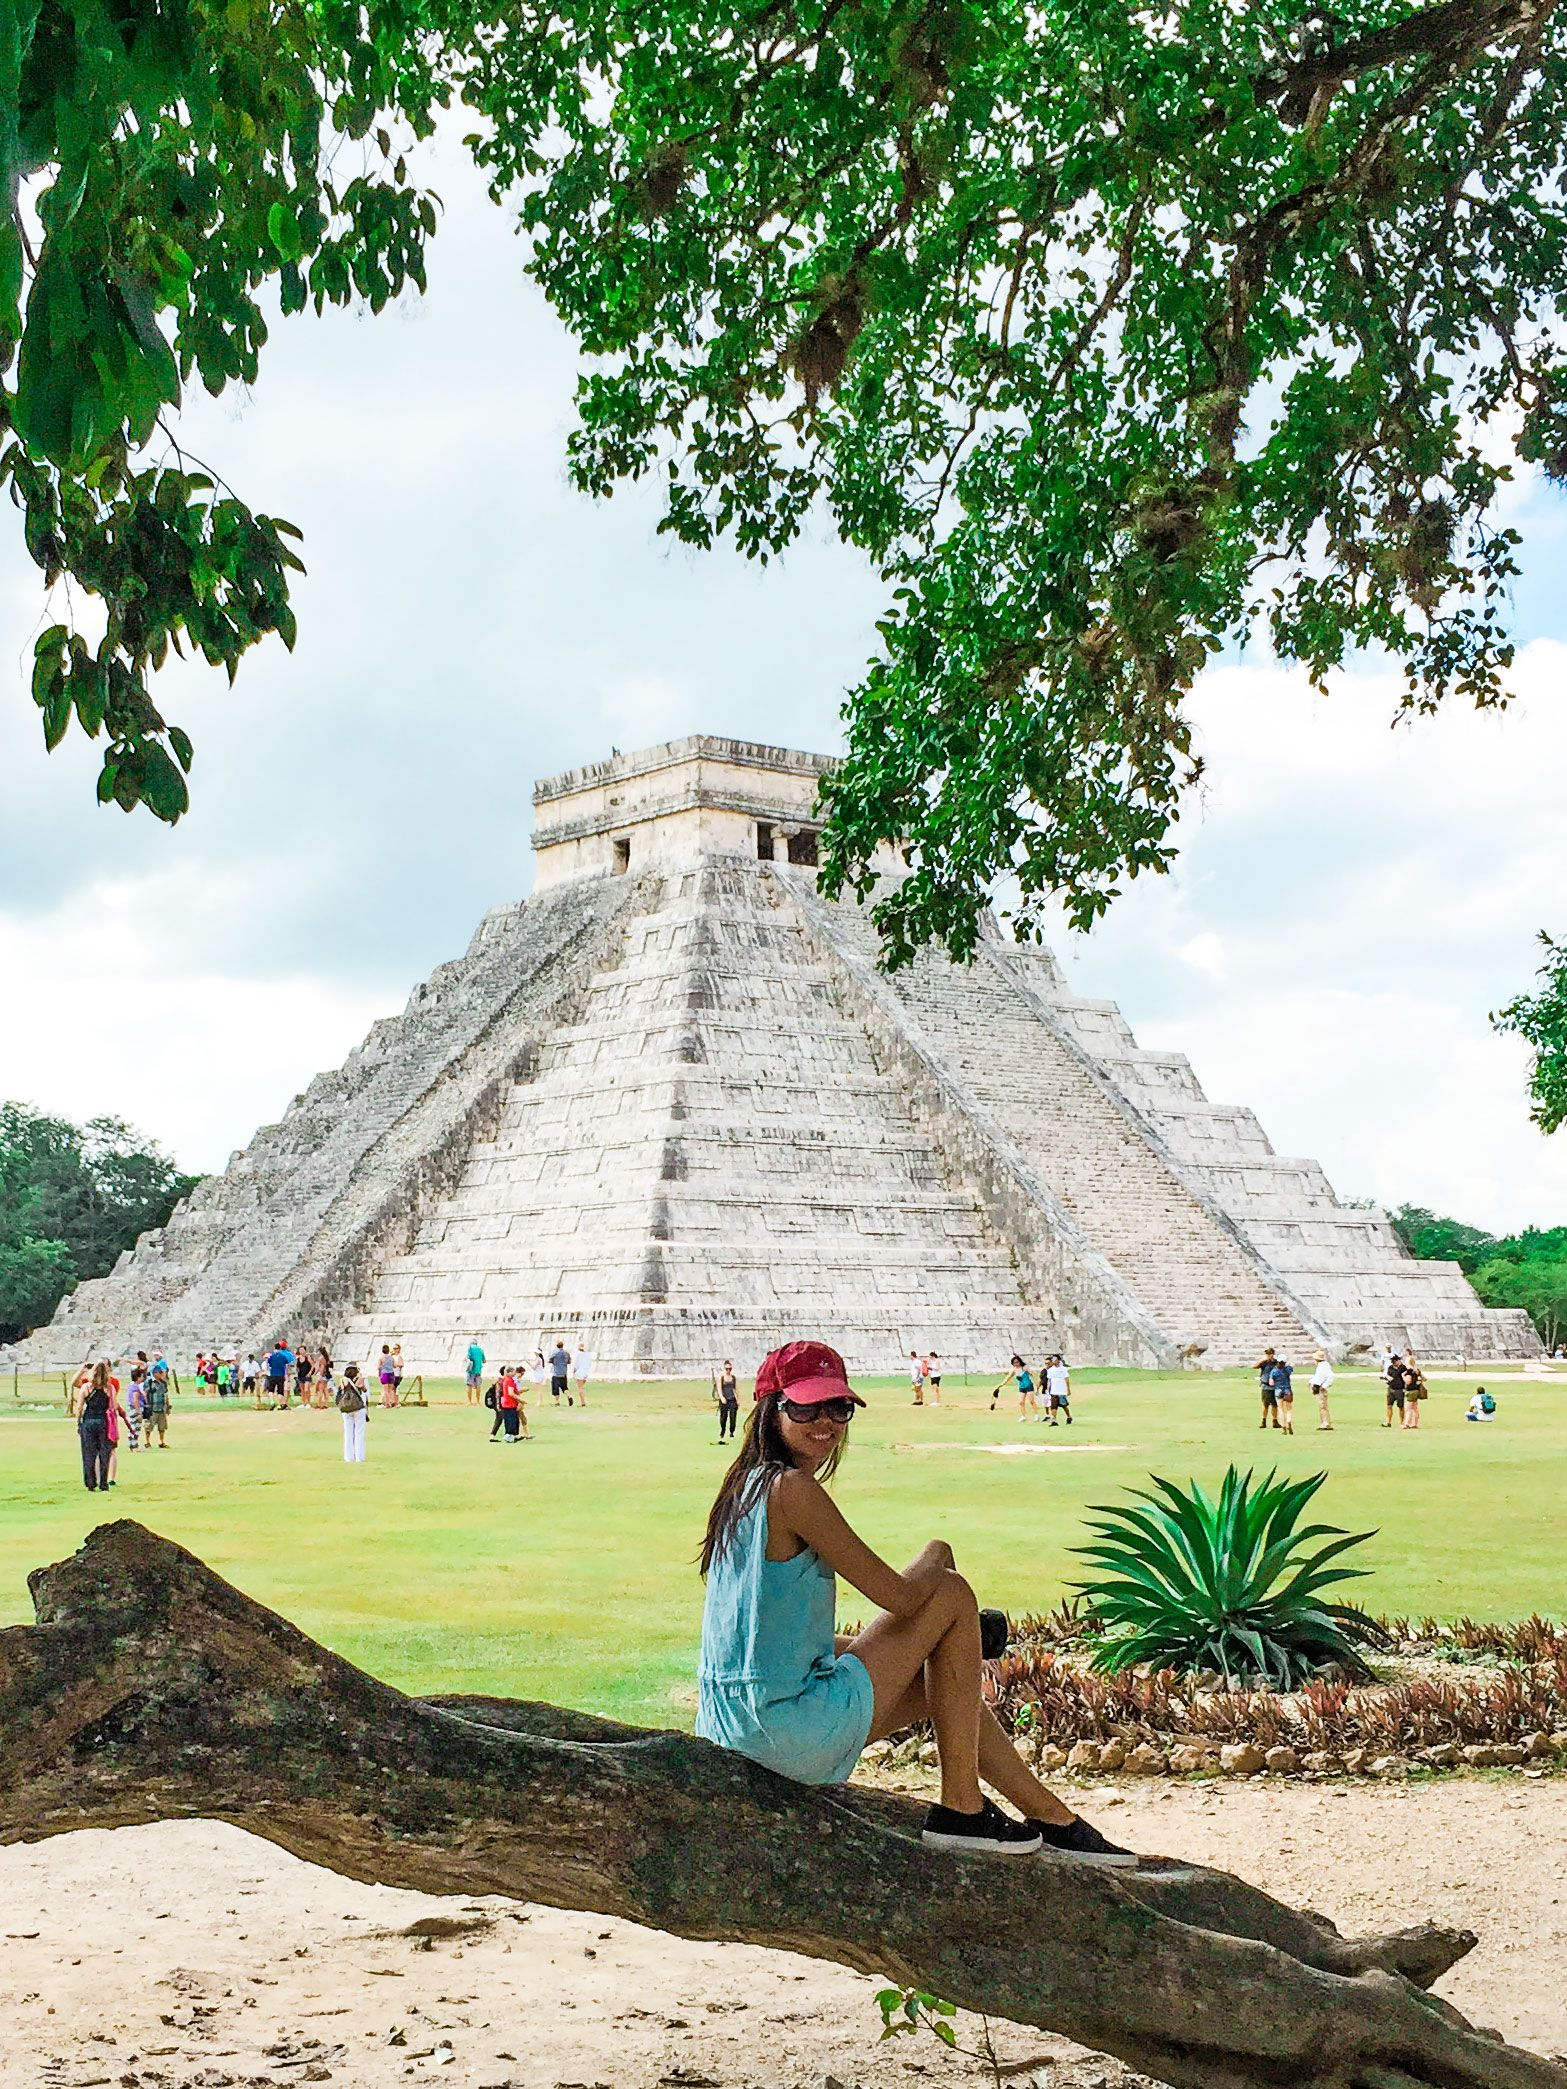 Everything You Need To Know About Visiting Tulum Mexico Travel Guide Including Day Trips To Chichen Itza Cenotes Fotos De Cancun Fotos En Cancun Viajes Fotos